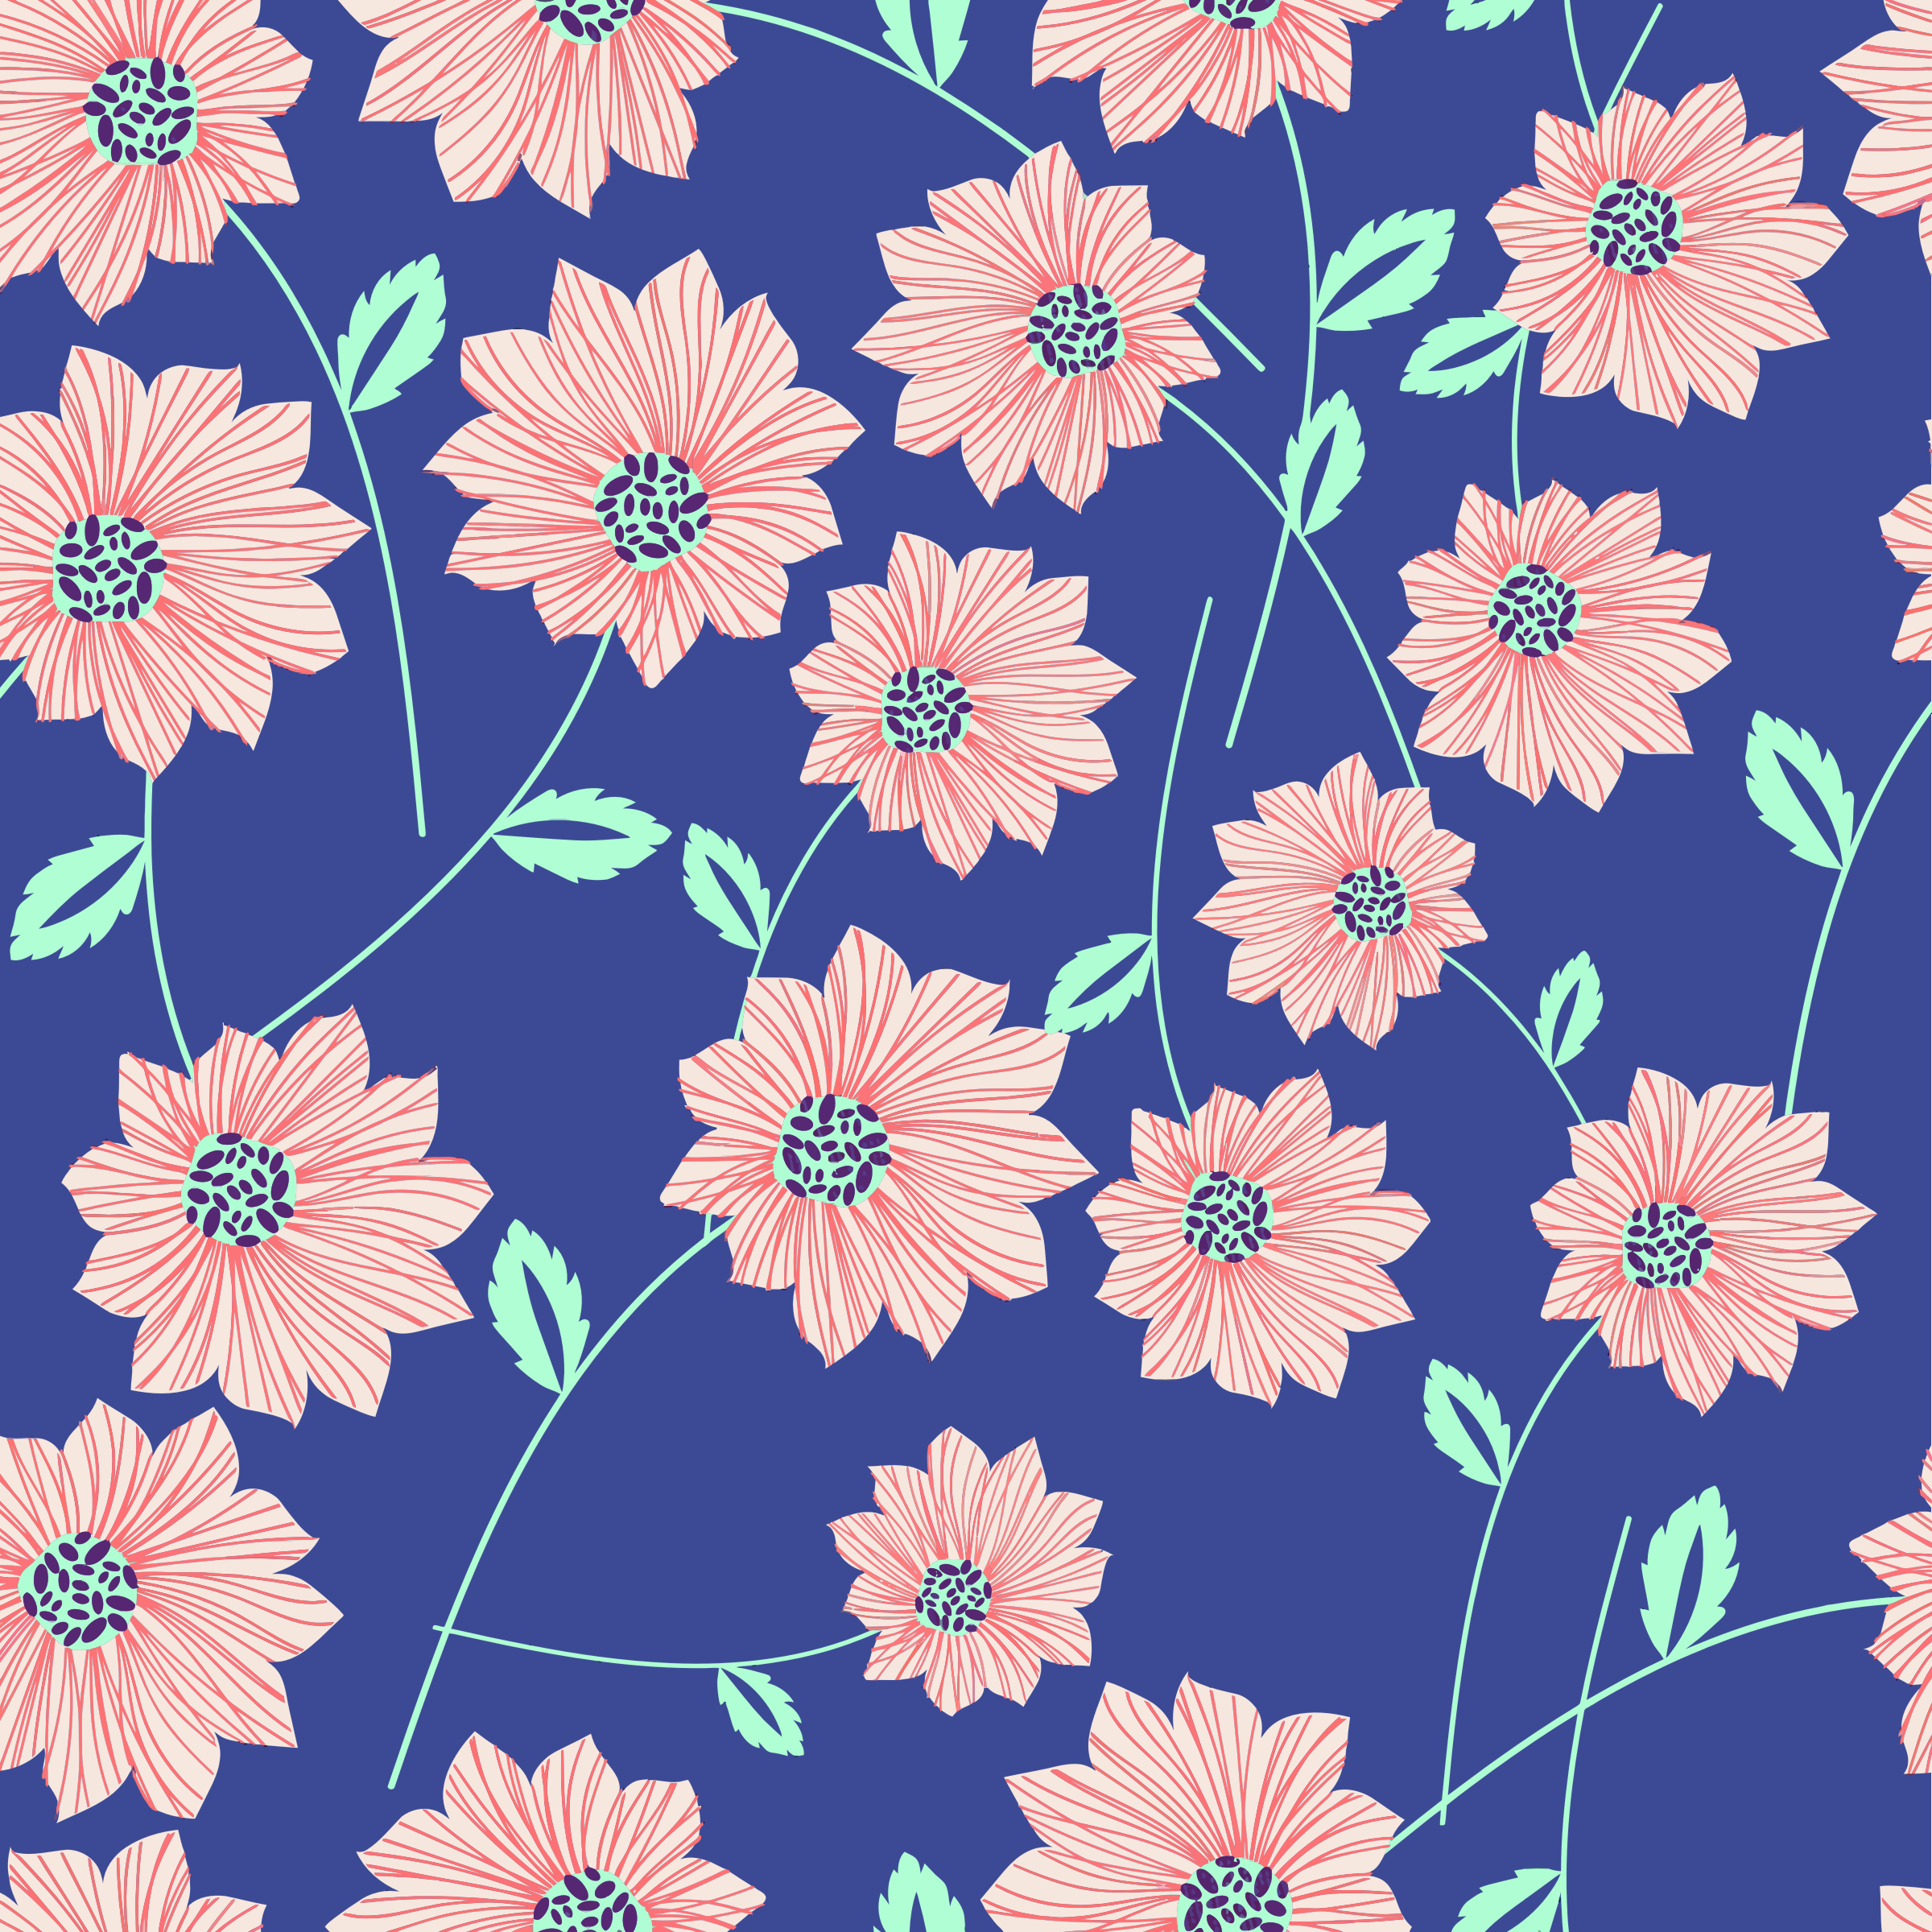 Seamless Blue Floral Pattern by GDJ